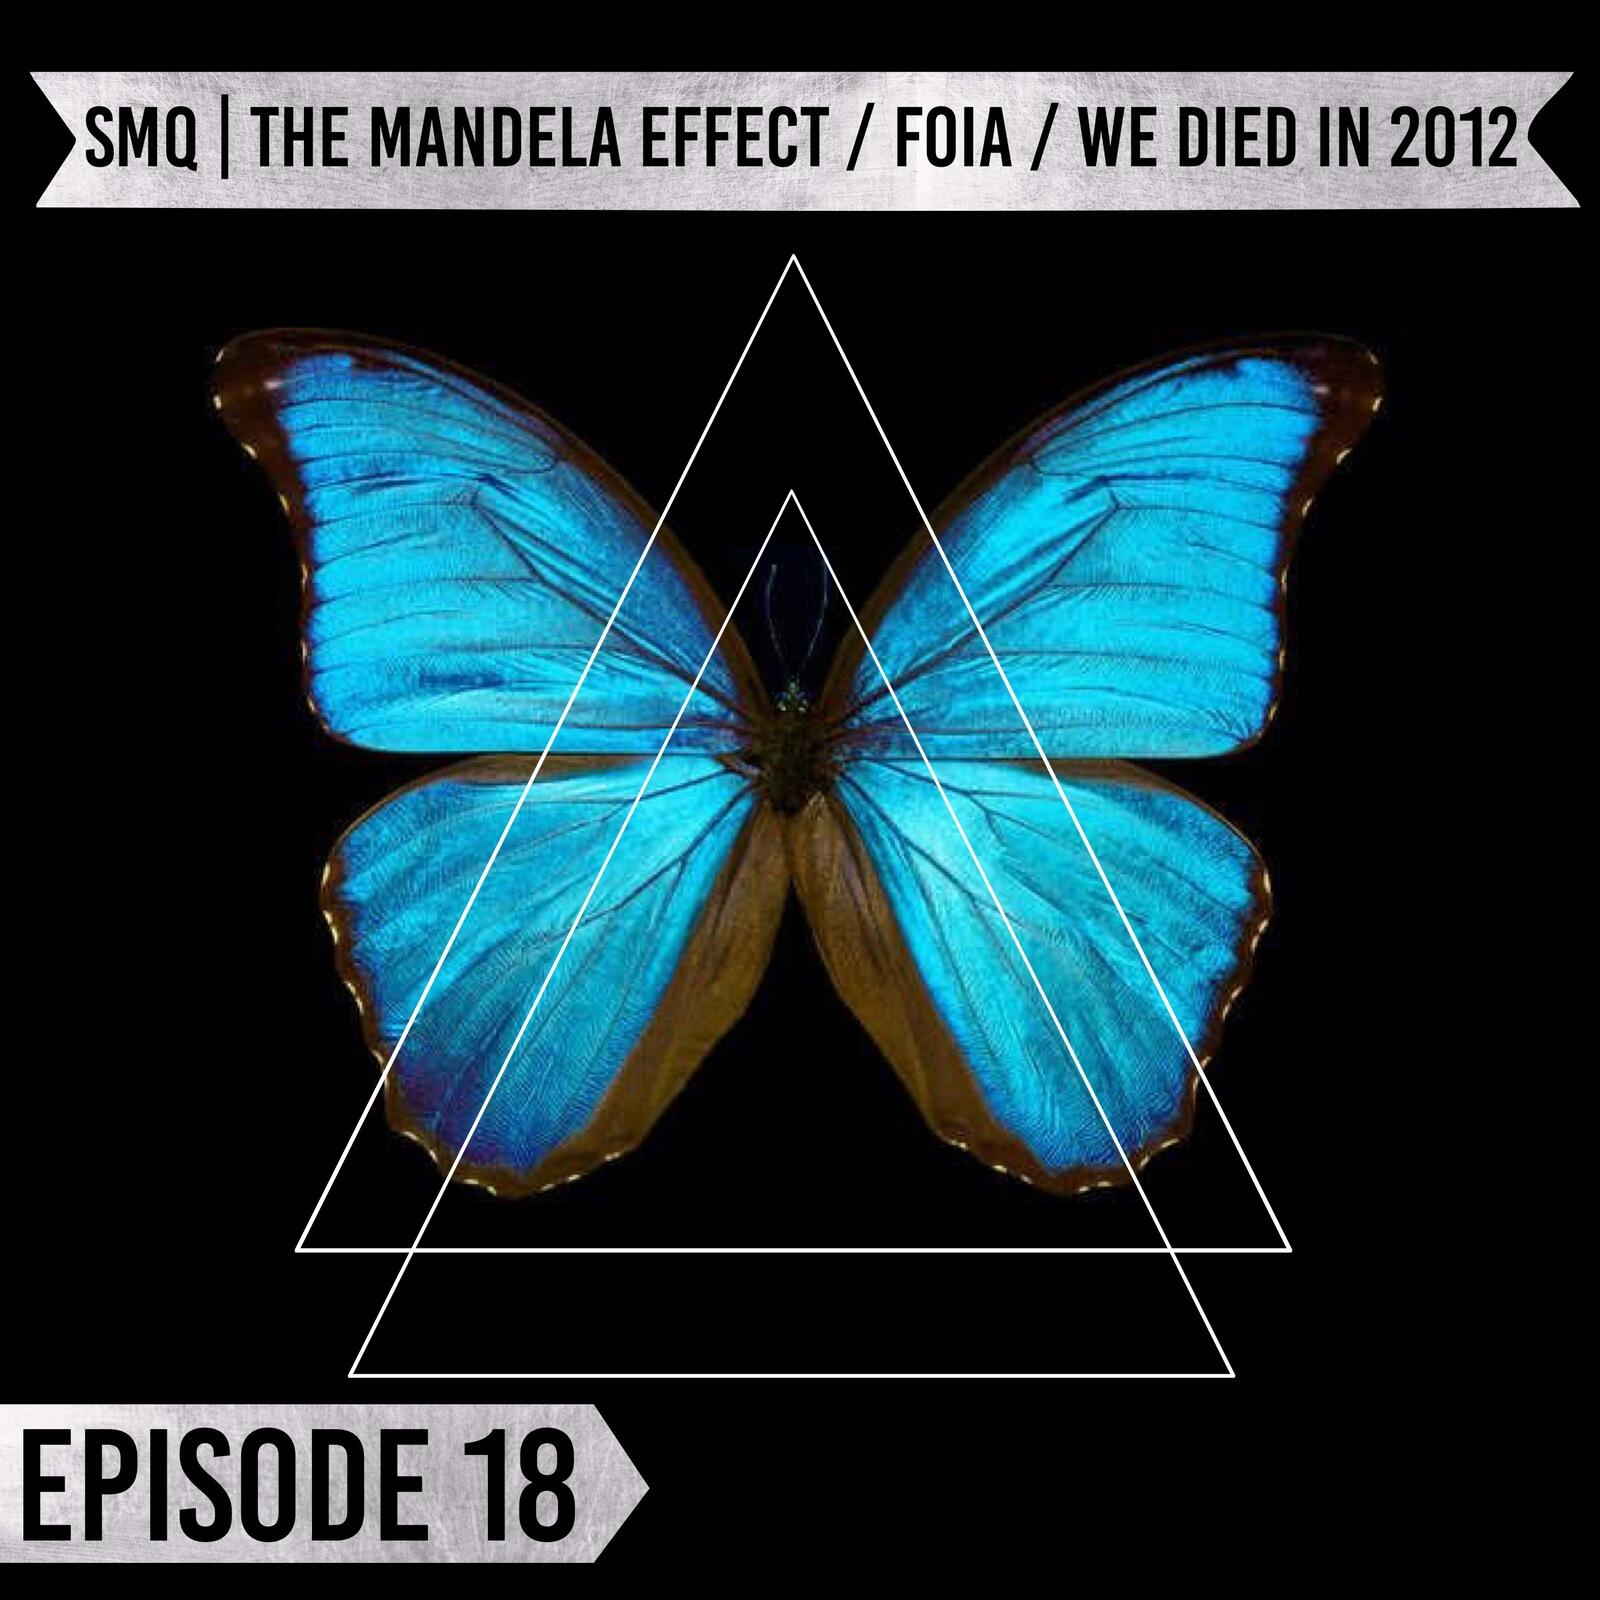 19: Episode 18 | SMQ AI | The Mandela Effect / FOIA / We Died in 2012